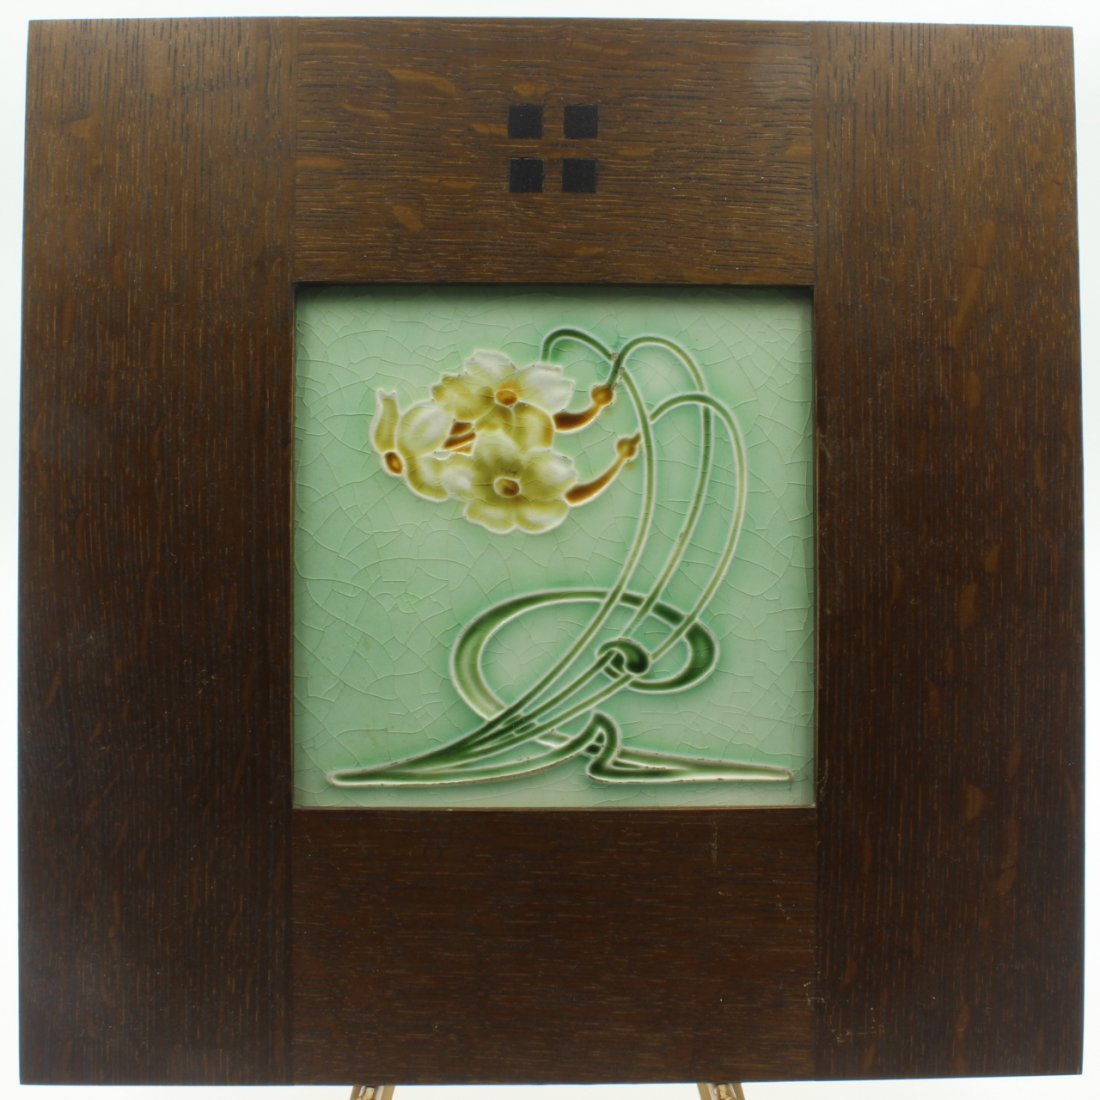 Art Nouveau Design Tile, C. 1906 - 2